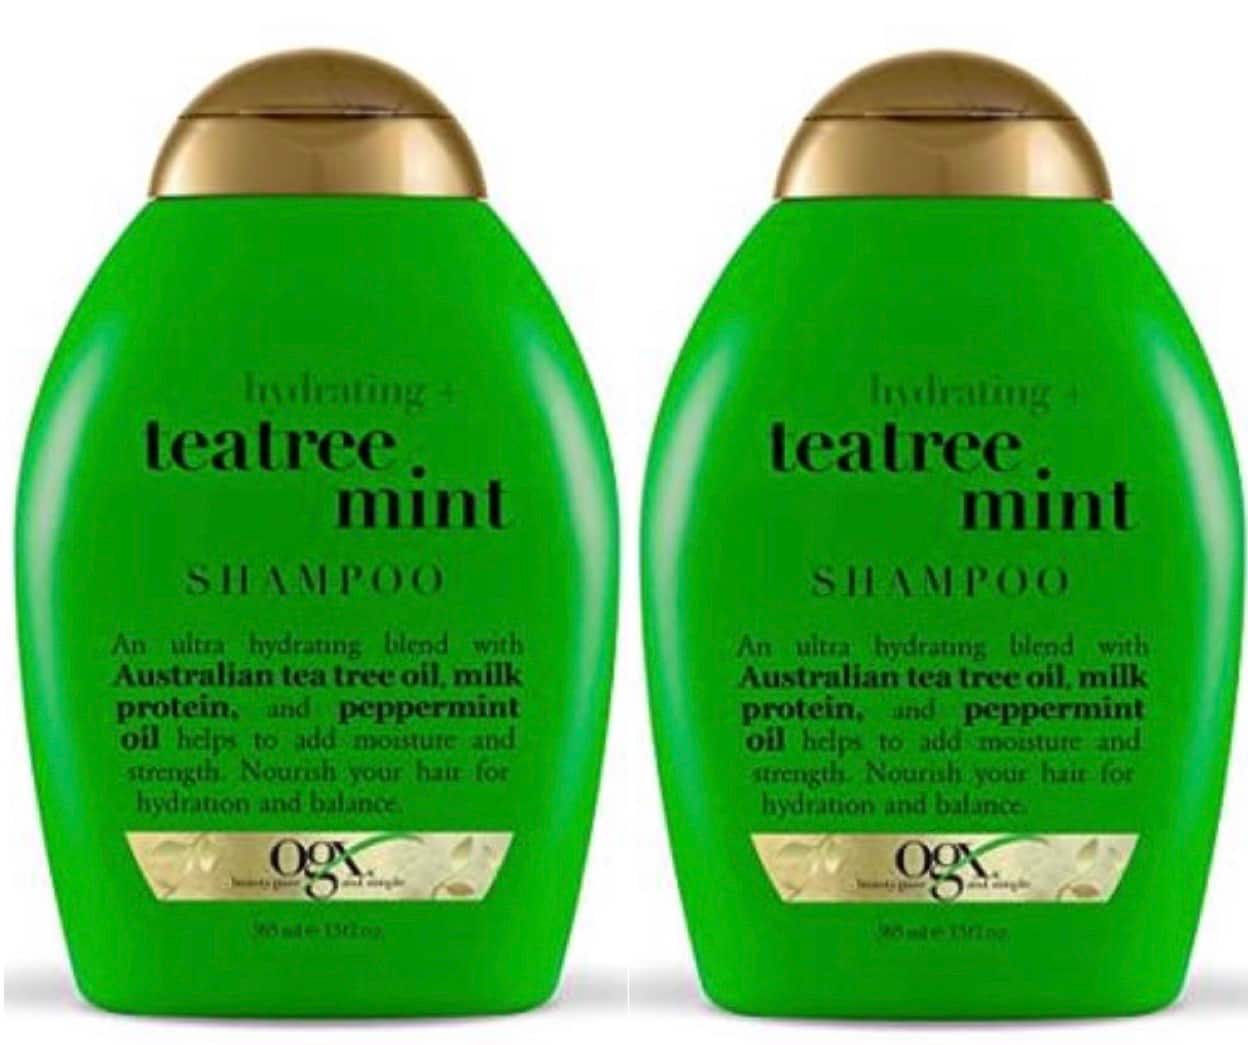 13-Oz OGX Hydrating + Tea Tree Mint Shampoo 2 for $8.05 ($4.02 each) + Free Shipping w/ Prime or on $25+